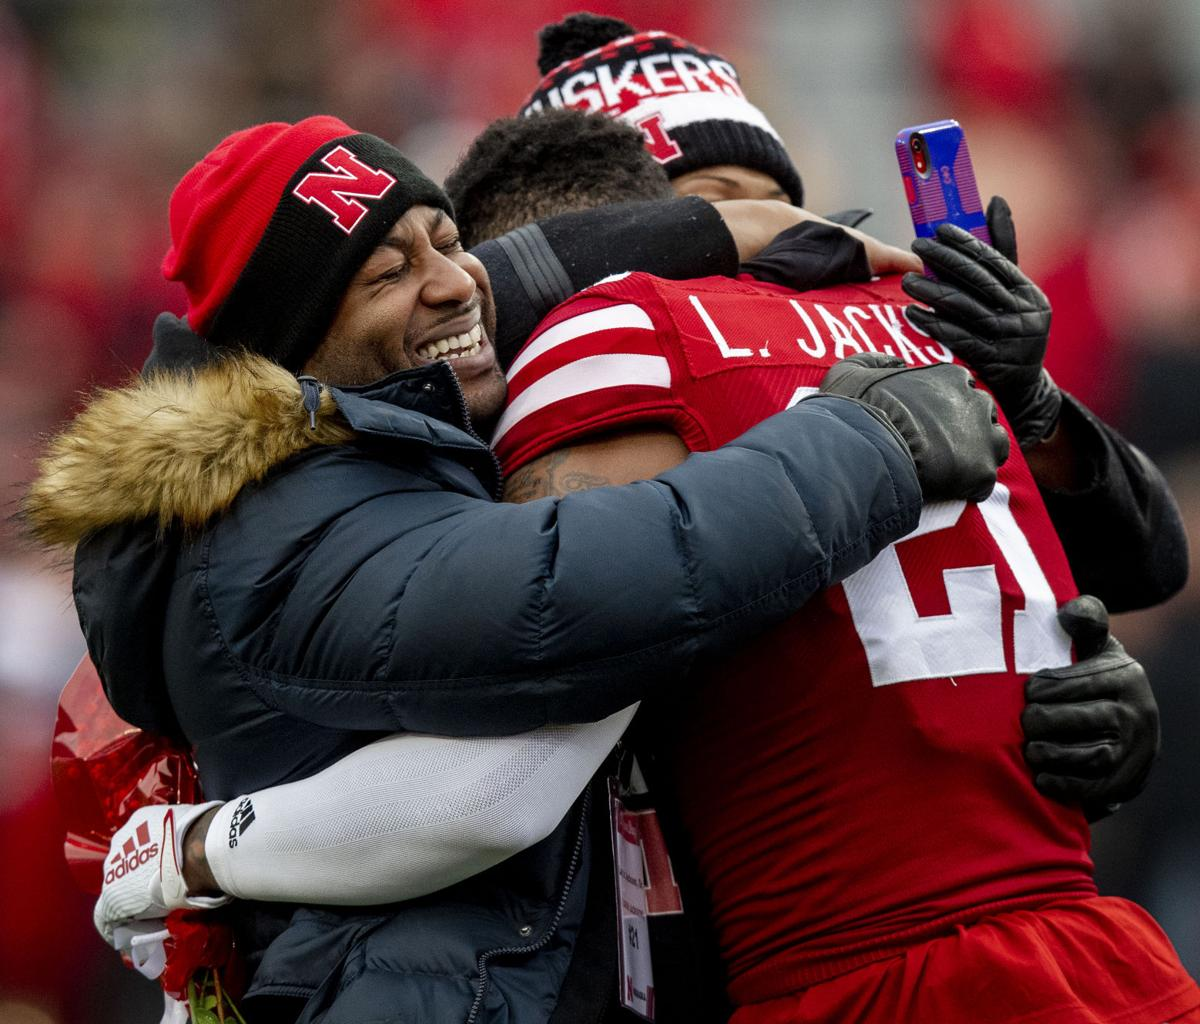 The Scene: Daniels family enjoyed season with two sons on ...